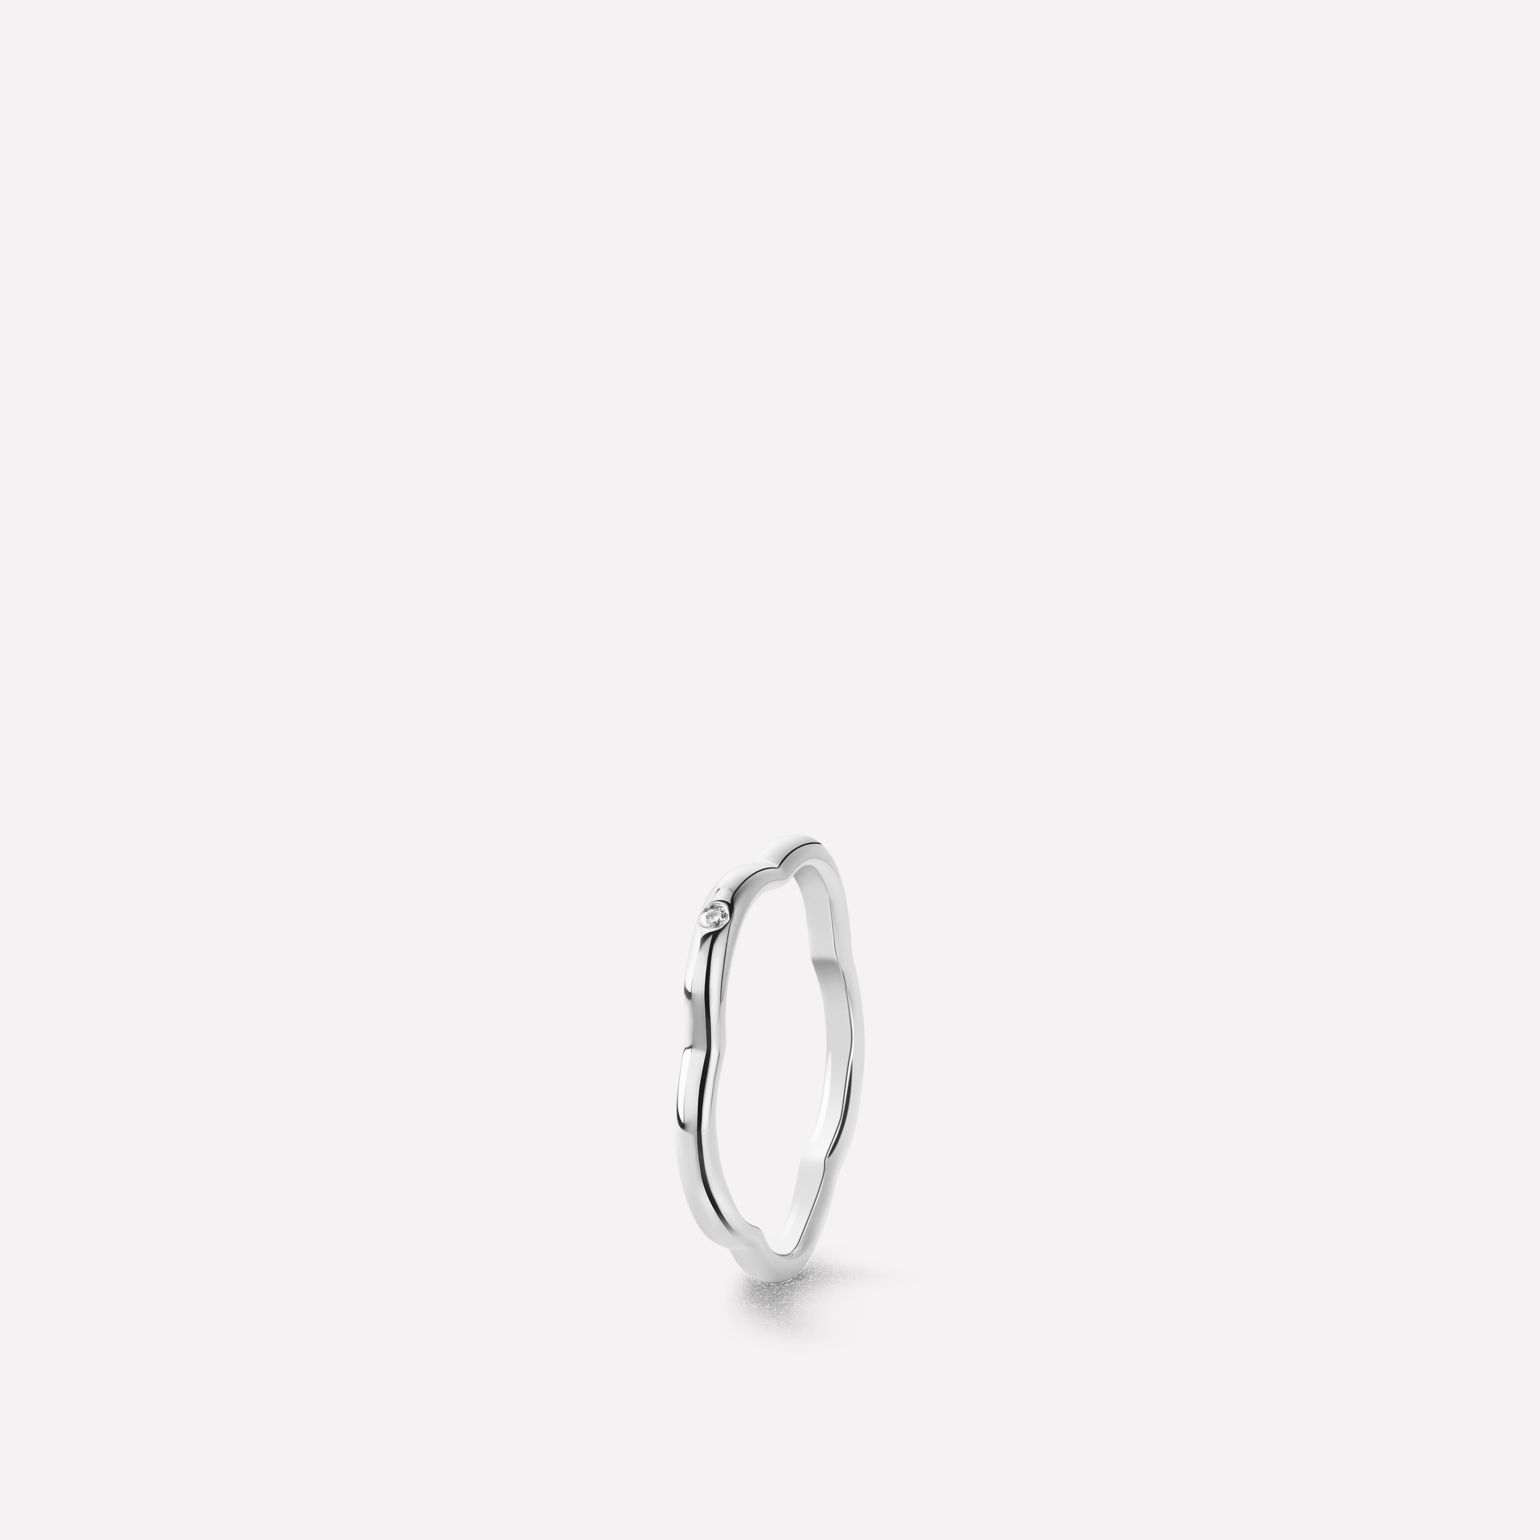 Camlia Ring Camlia Ring In 18K White Gold With One